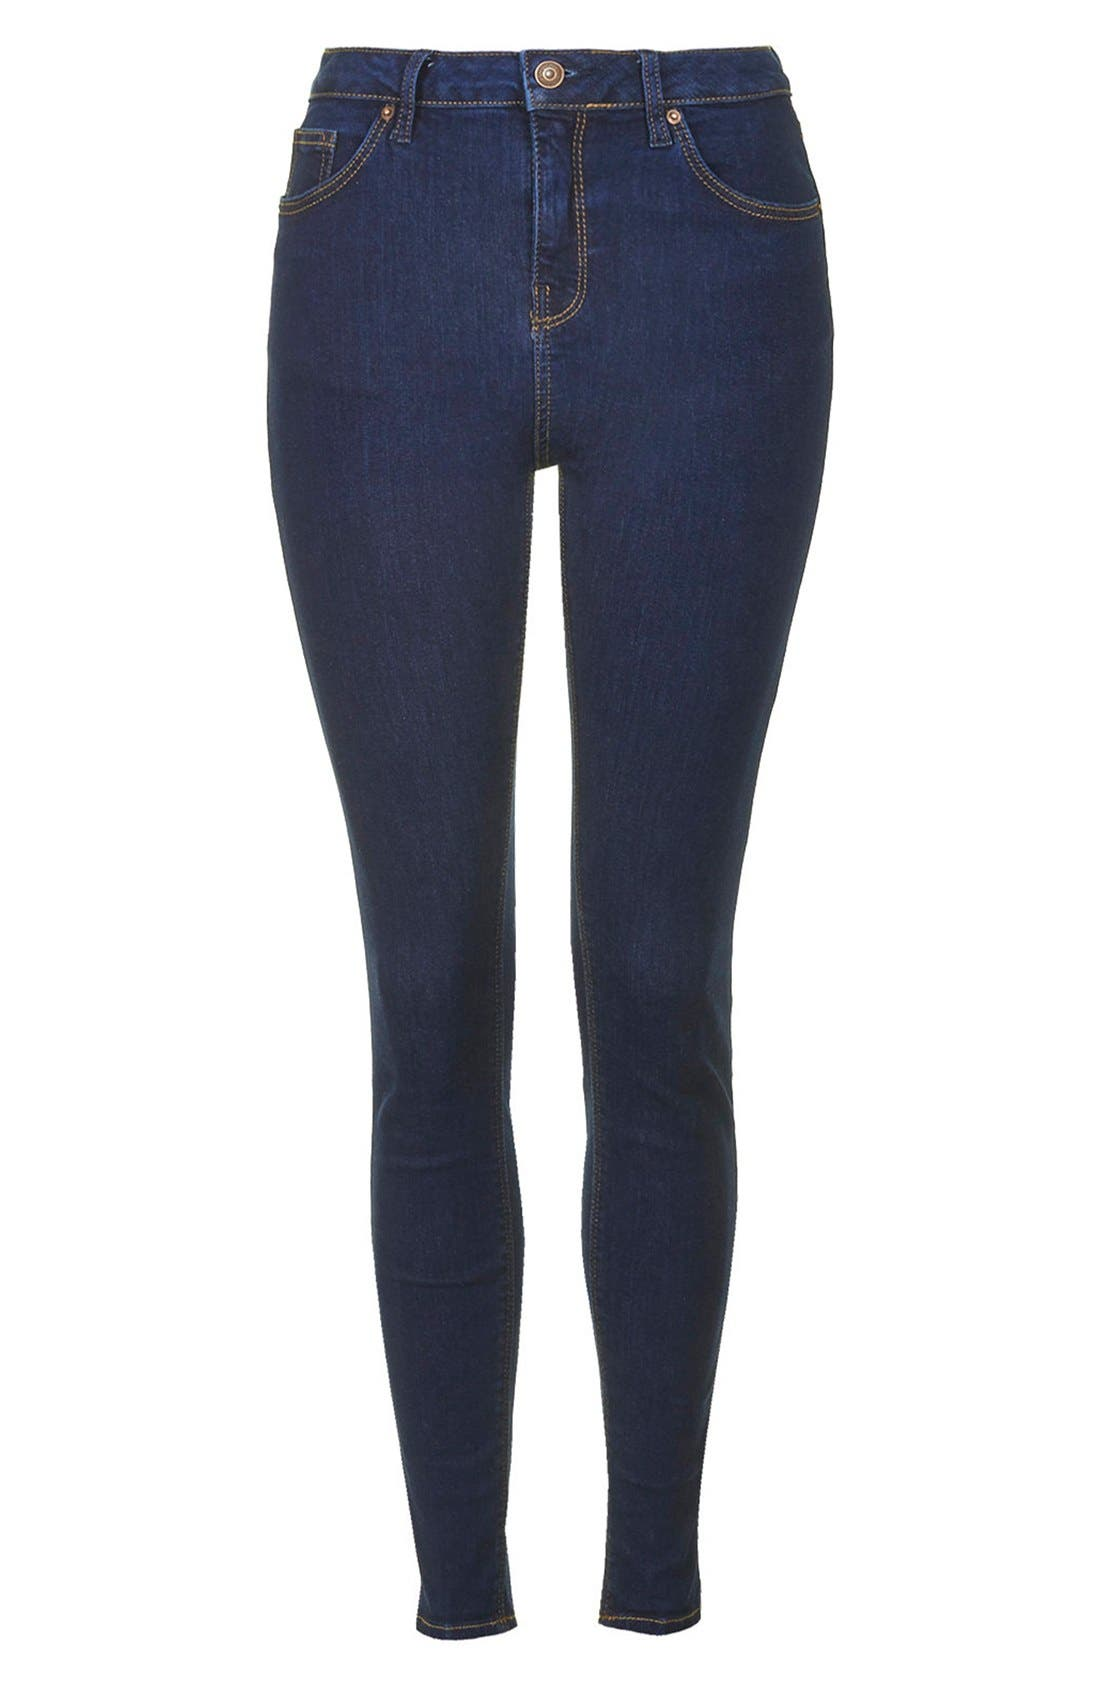 TOPSHOP, Moto 'Jamie' Skinny Jeans, Alternate thumbnail 3, color, 400